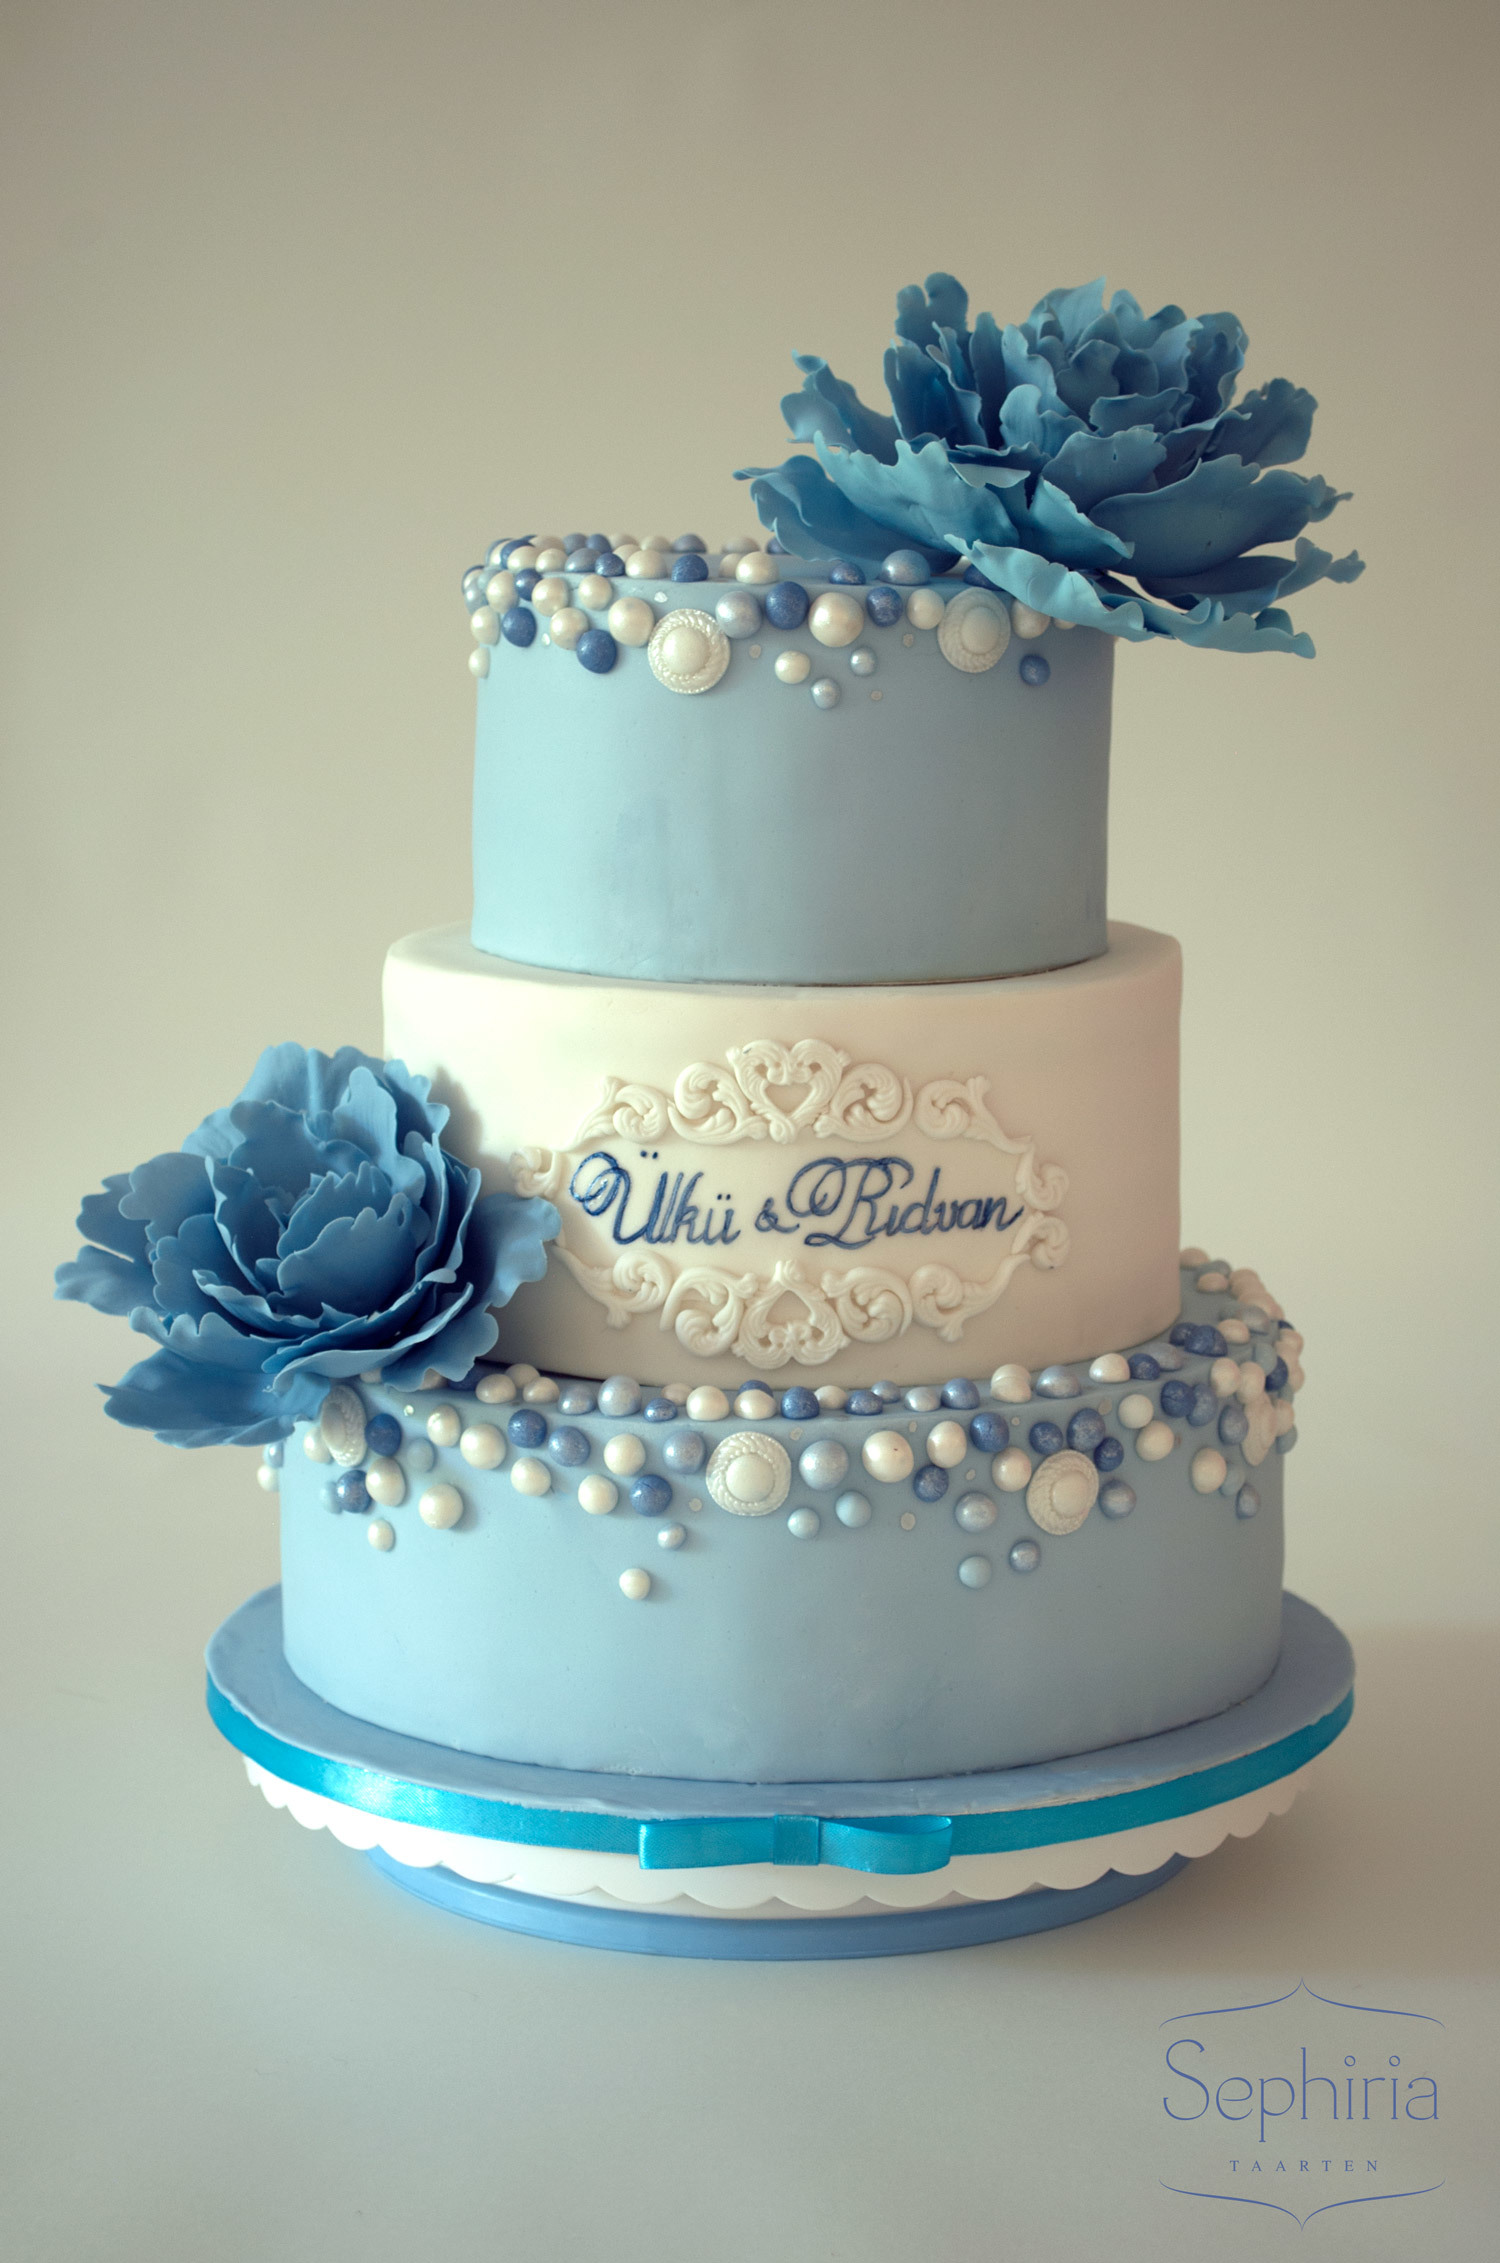 Light Blue & White fondant cake with bluesugar flowers